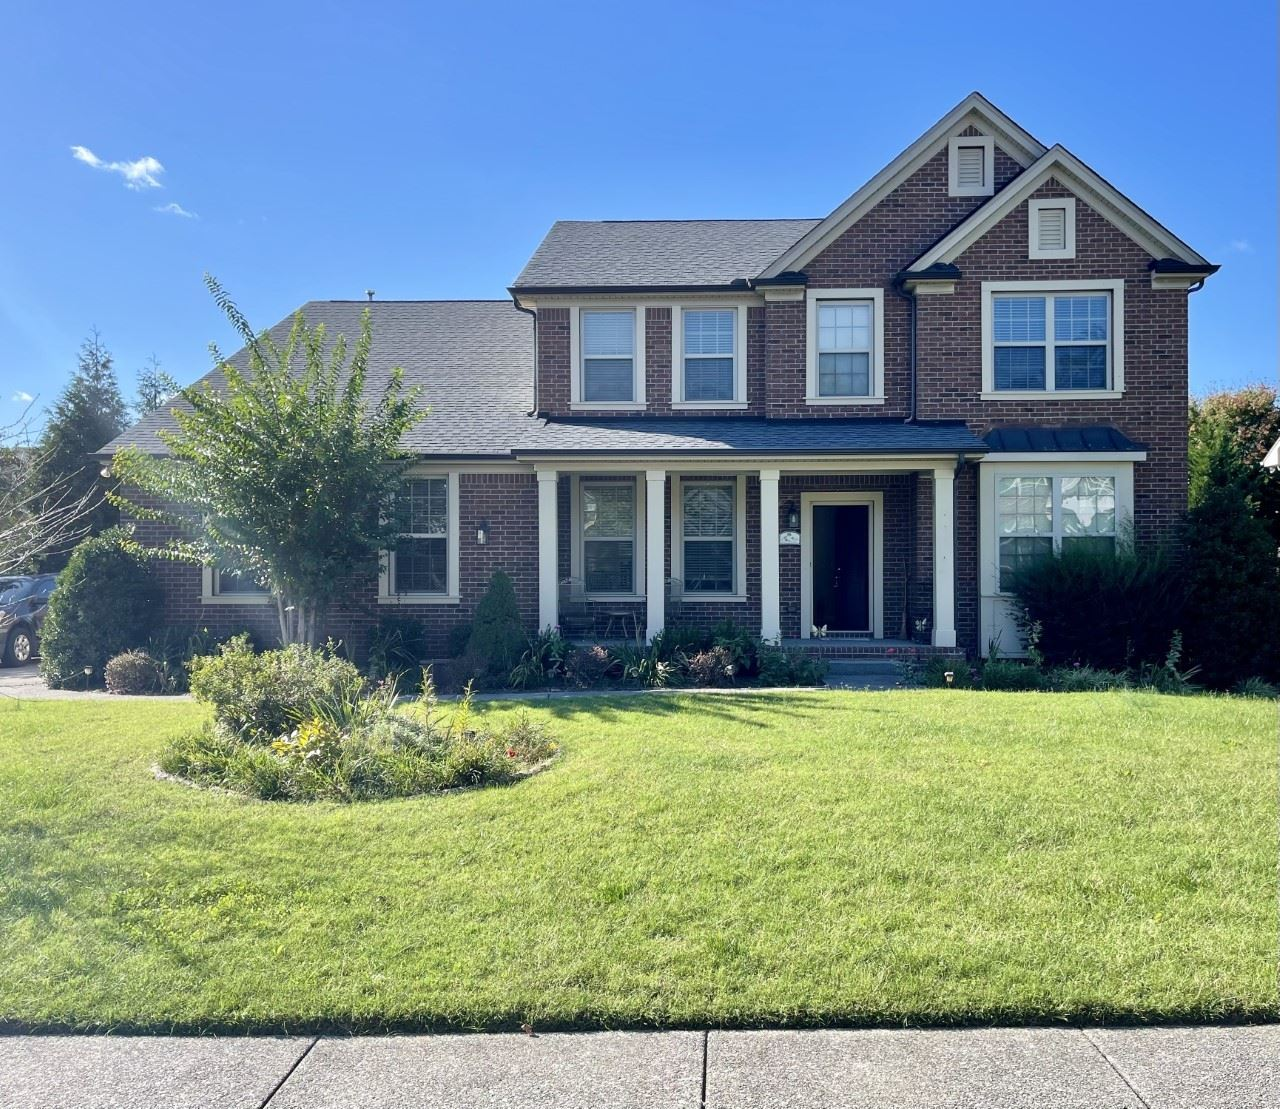 Photo of 1029 Cantwell Pl, Spring Hill, TN 37174 (MLS # 2301016)